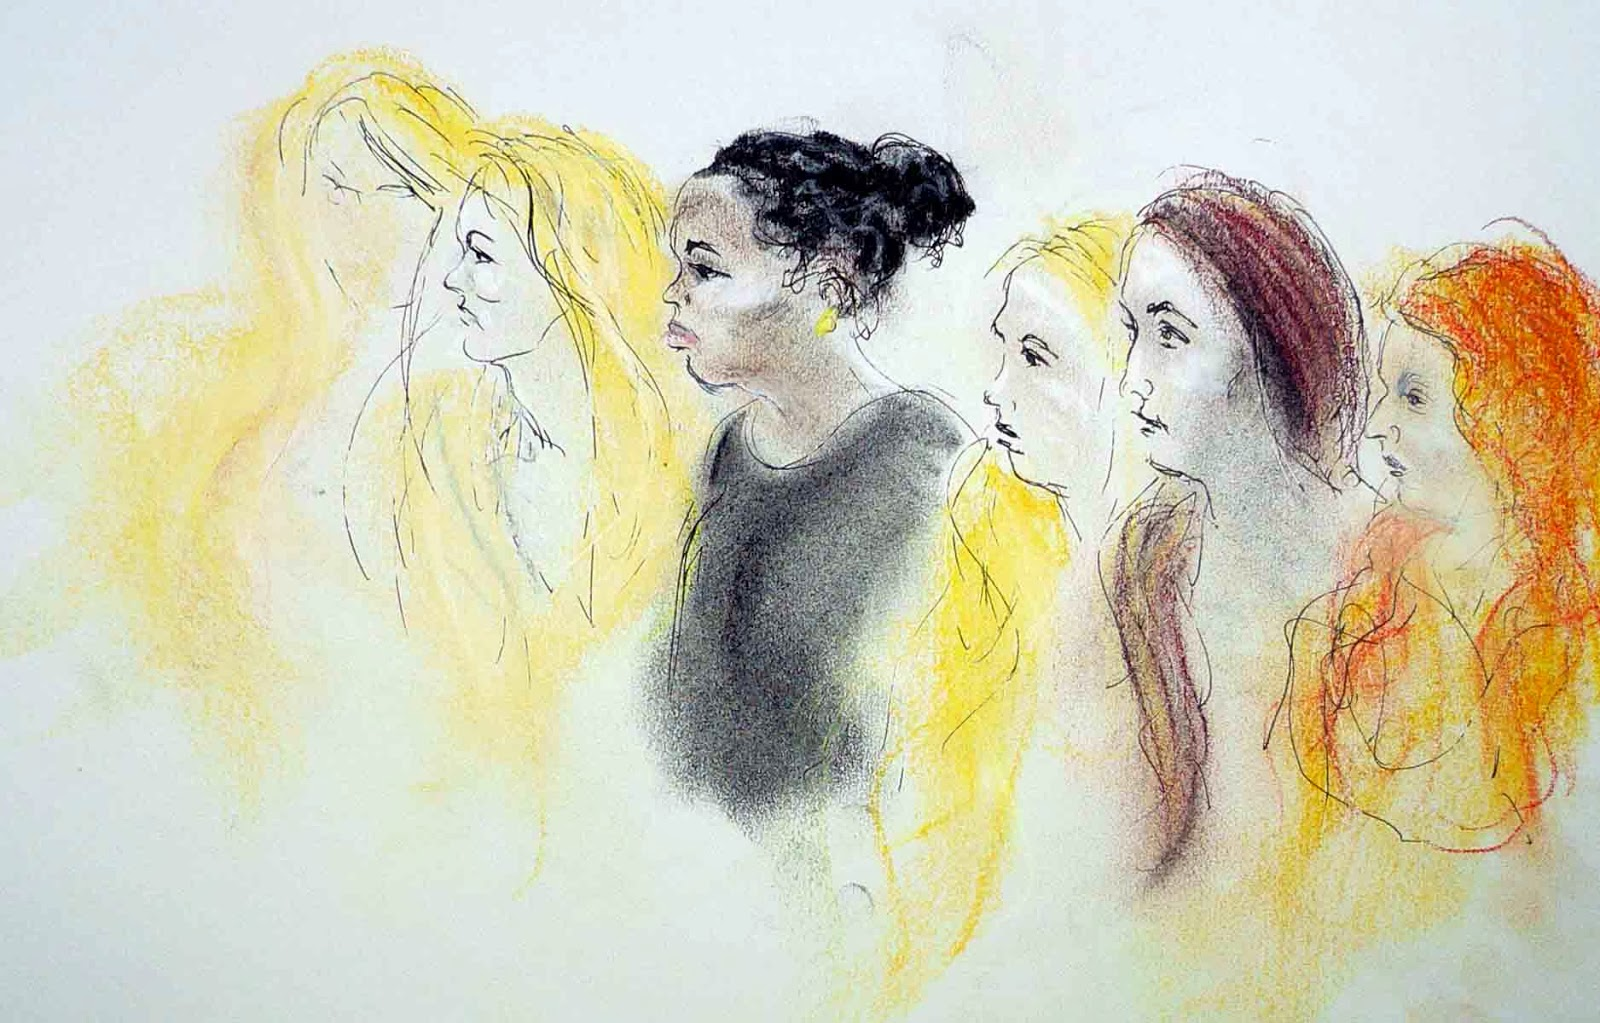 The public gallery in the Supreme Court: Sketch by Isobel Williams (www.isobelwilliams.org.uk)